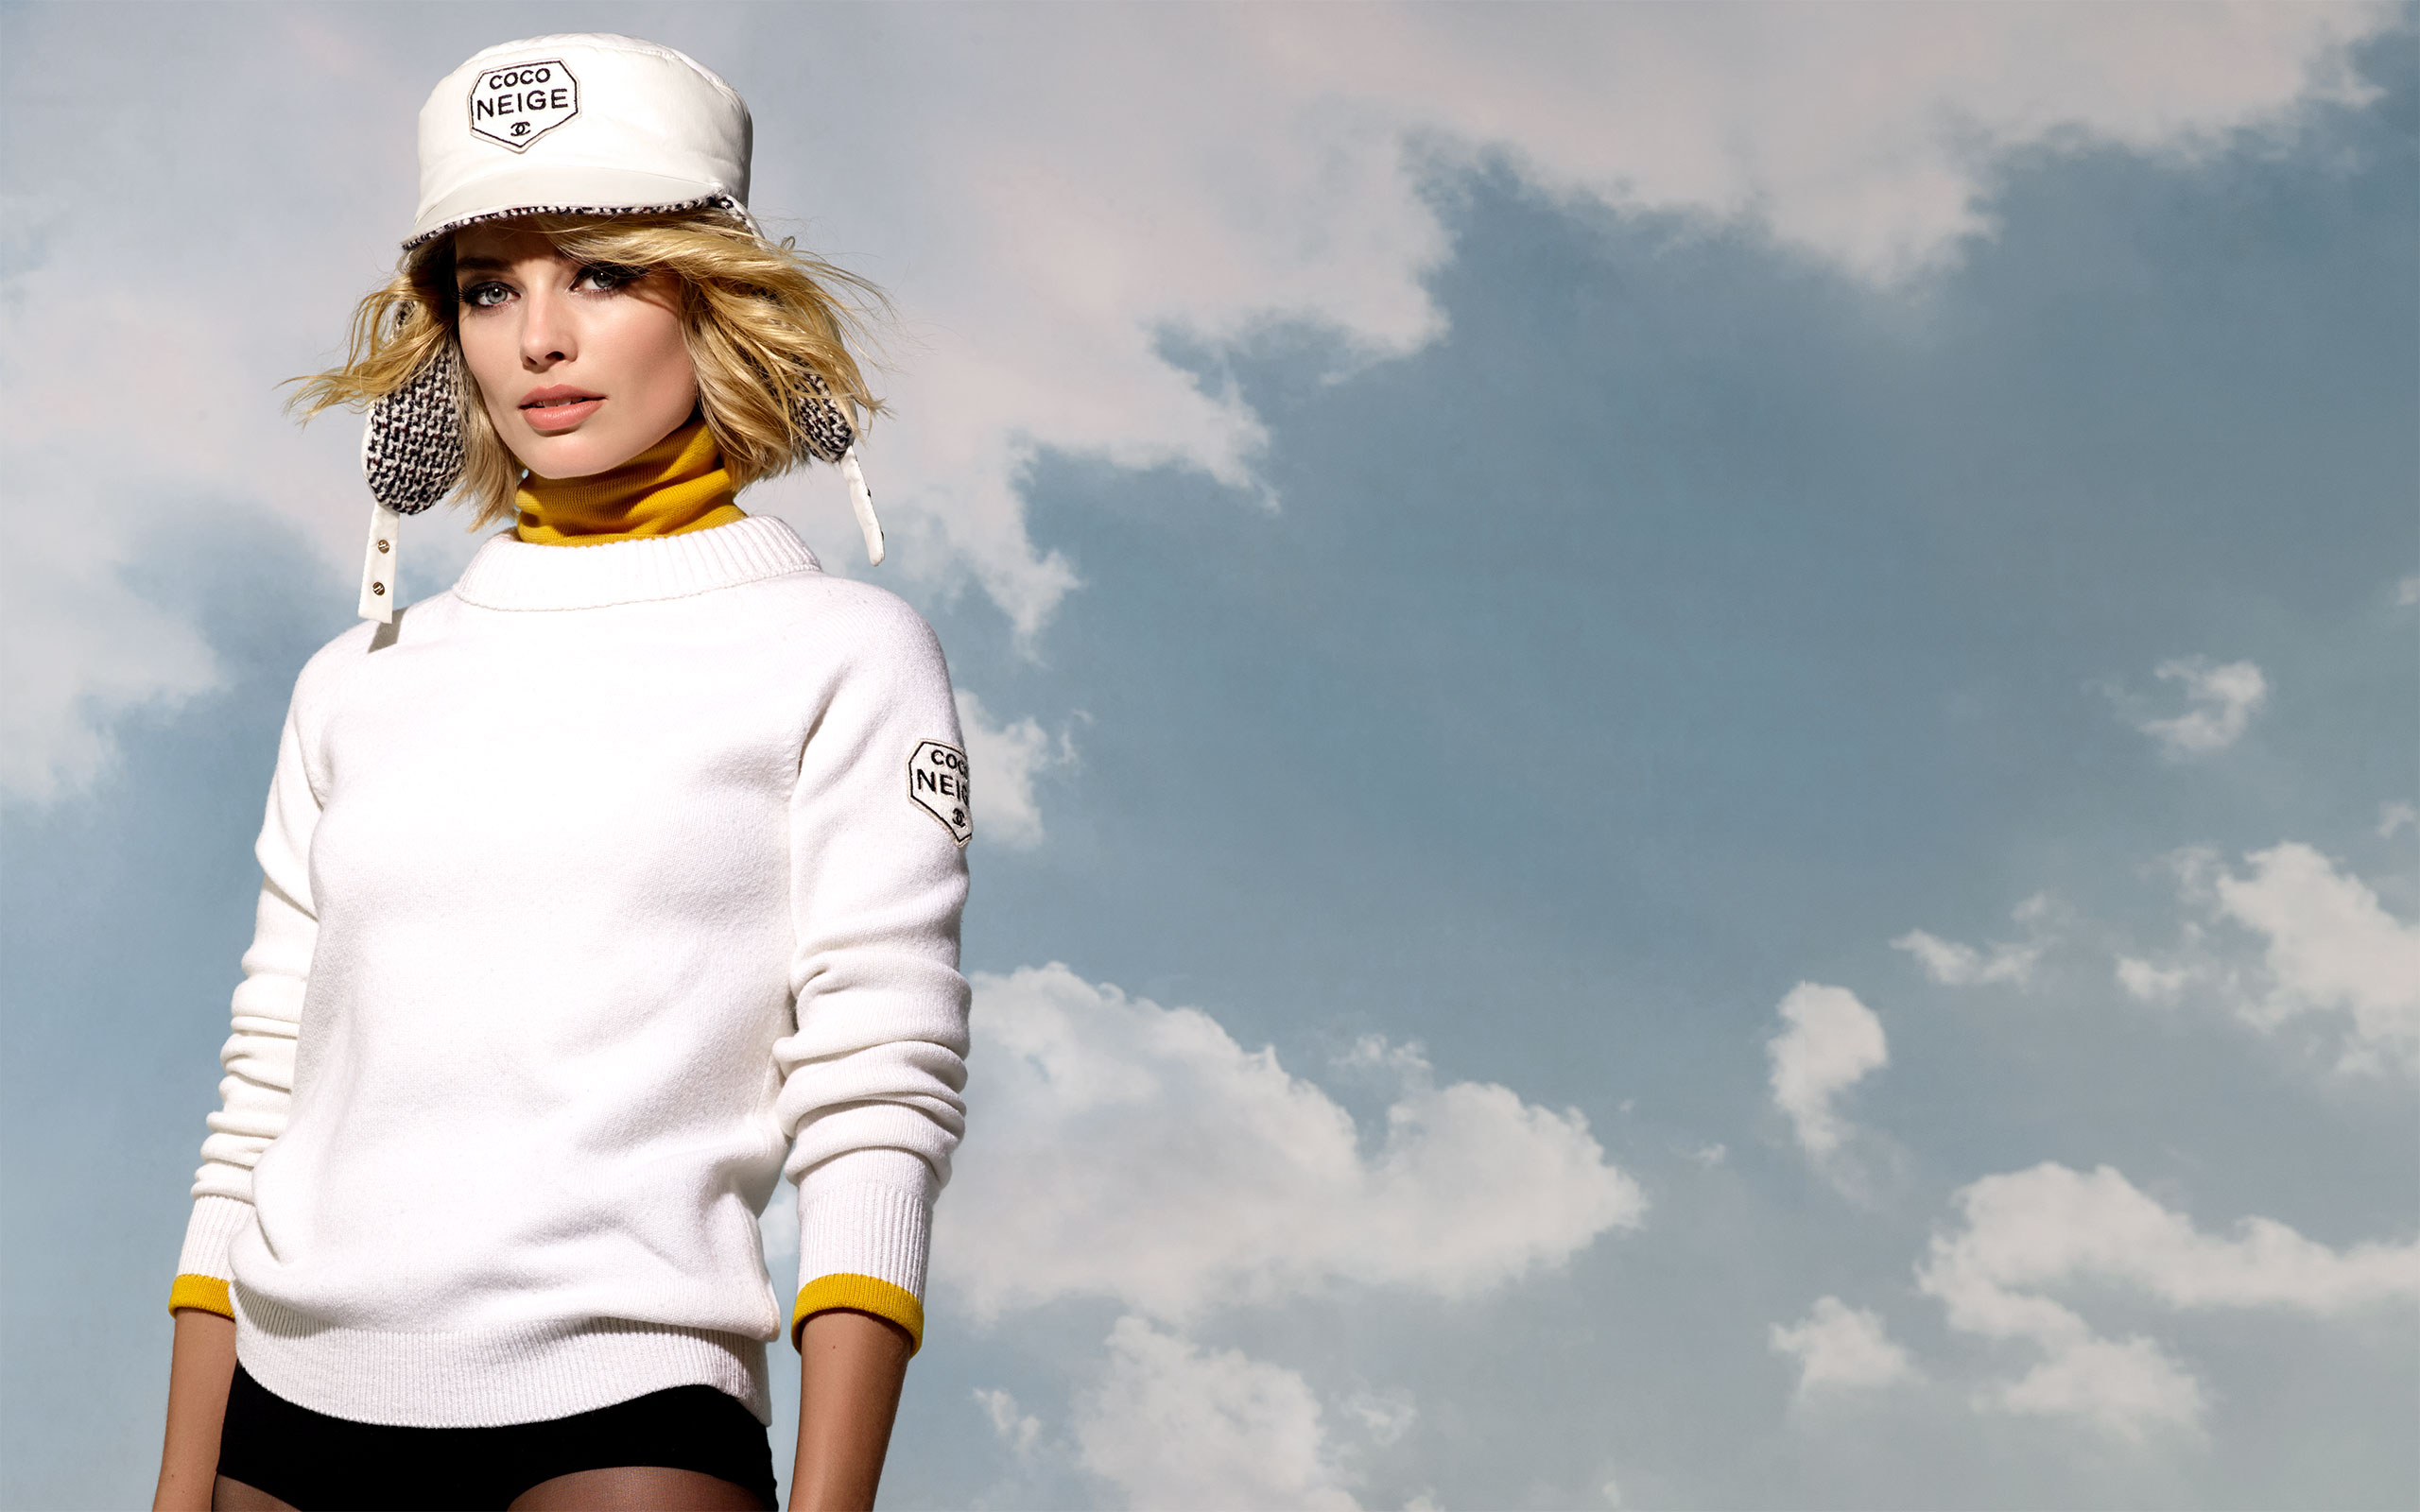 """Margot Robbie Fronts Chanel's New Capsule Collection """"COCO NEIGE"""""""